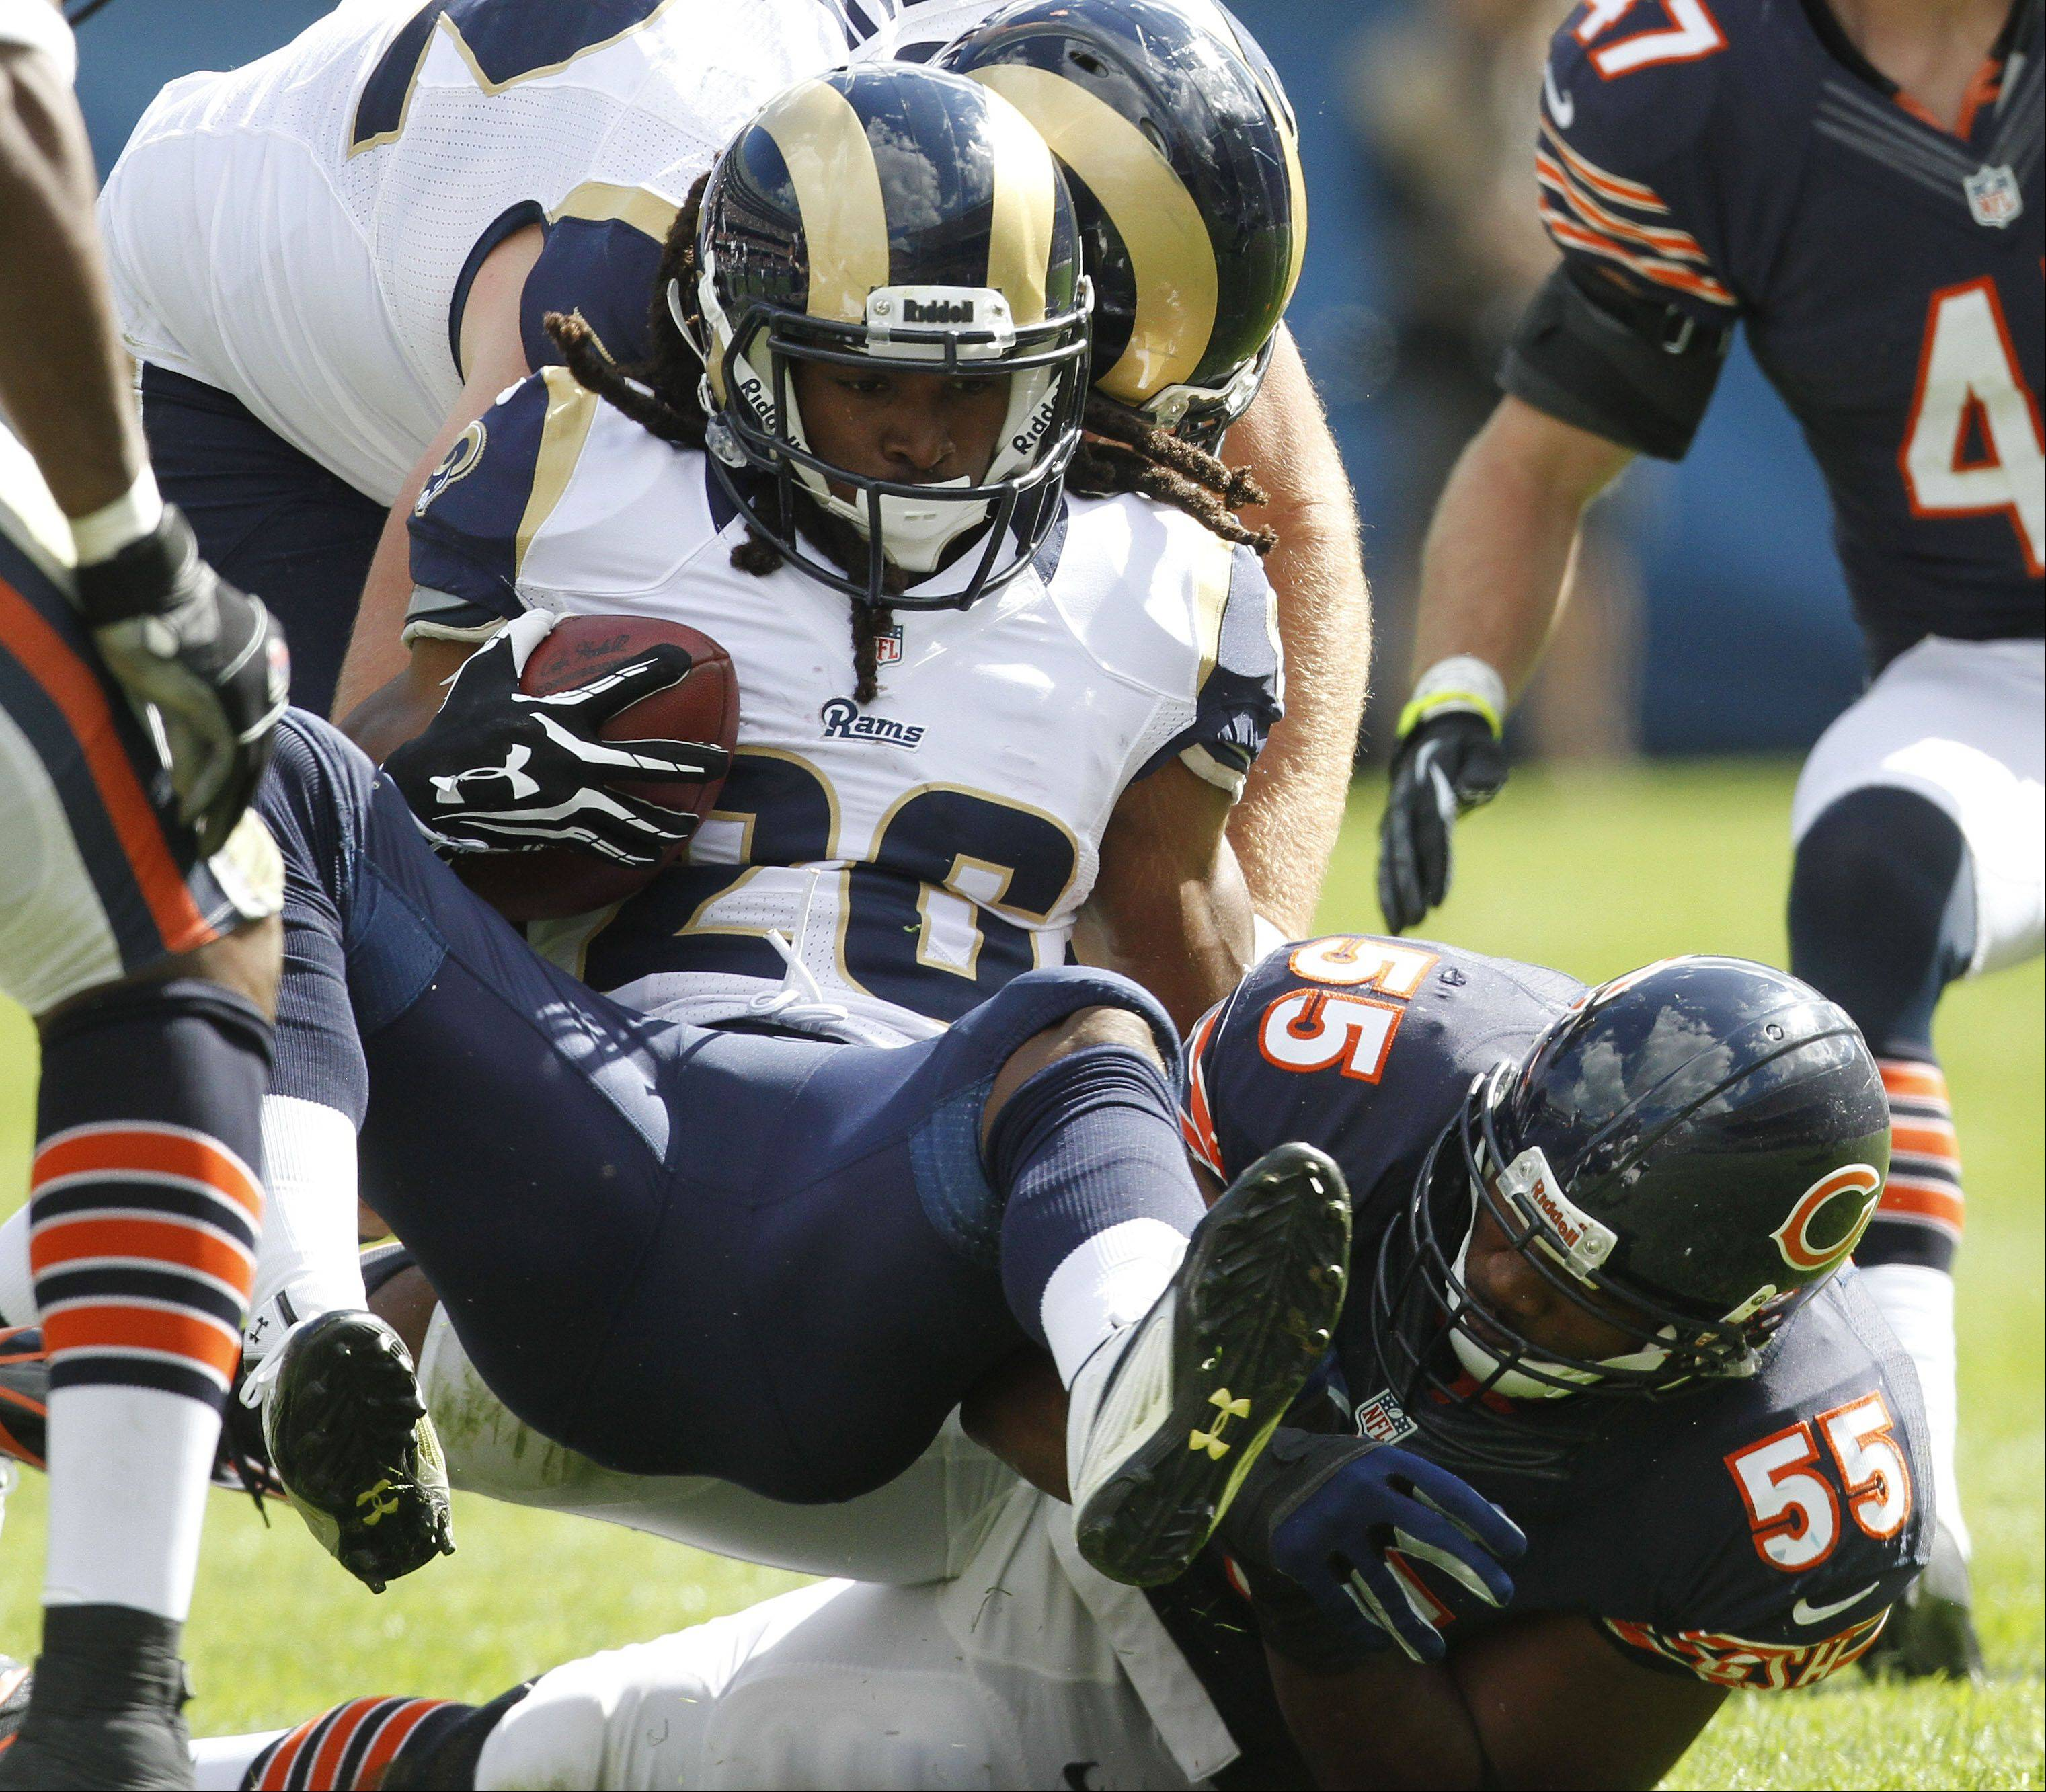 Chicago Bears linebacker Lance Briggs puts a hard hit on St. Louis Rams running back Daryl Richardson during the Bears 23-6 win over the St. Louis Rams Sunday at Soldier Field in Chicago.